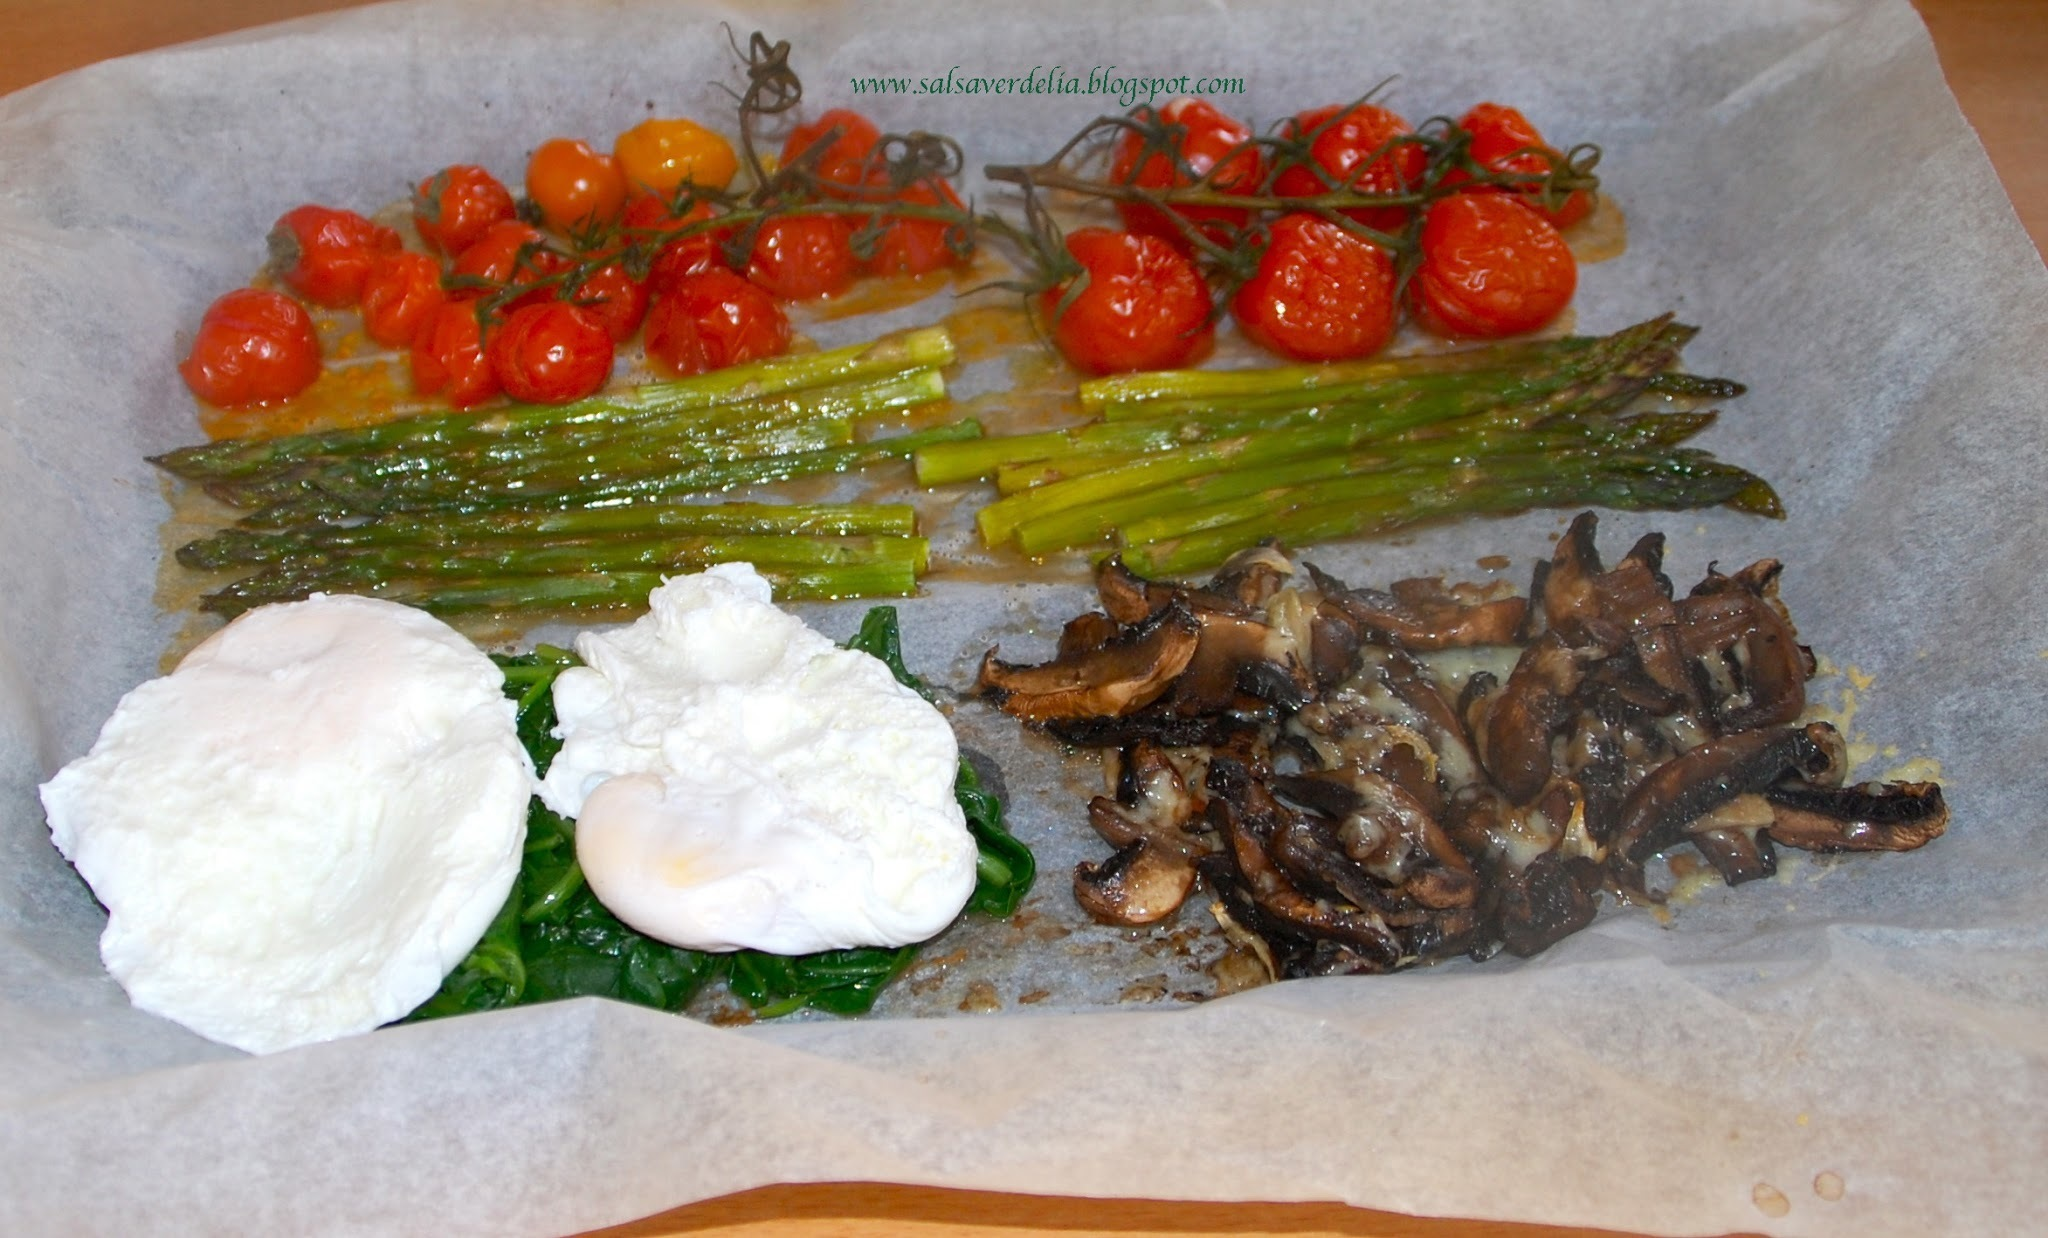 Asparagus, mushrooms, spinach, tomatoes and eggs / Espargos, cogumelos, espinafres, tomates e ovos!